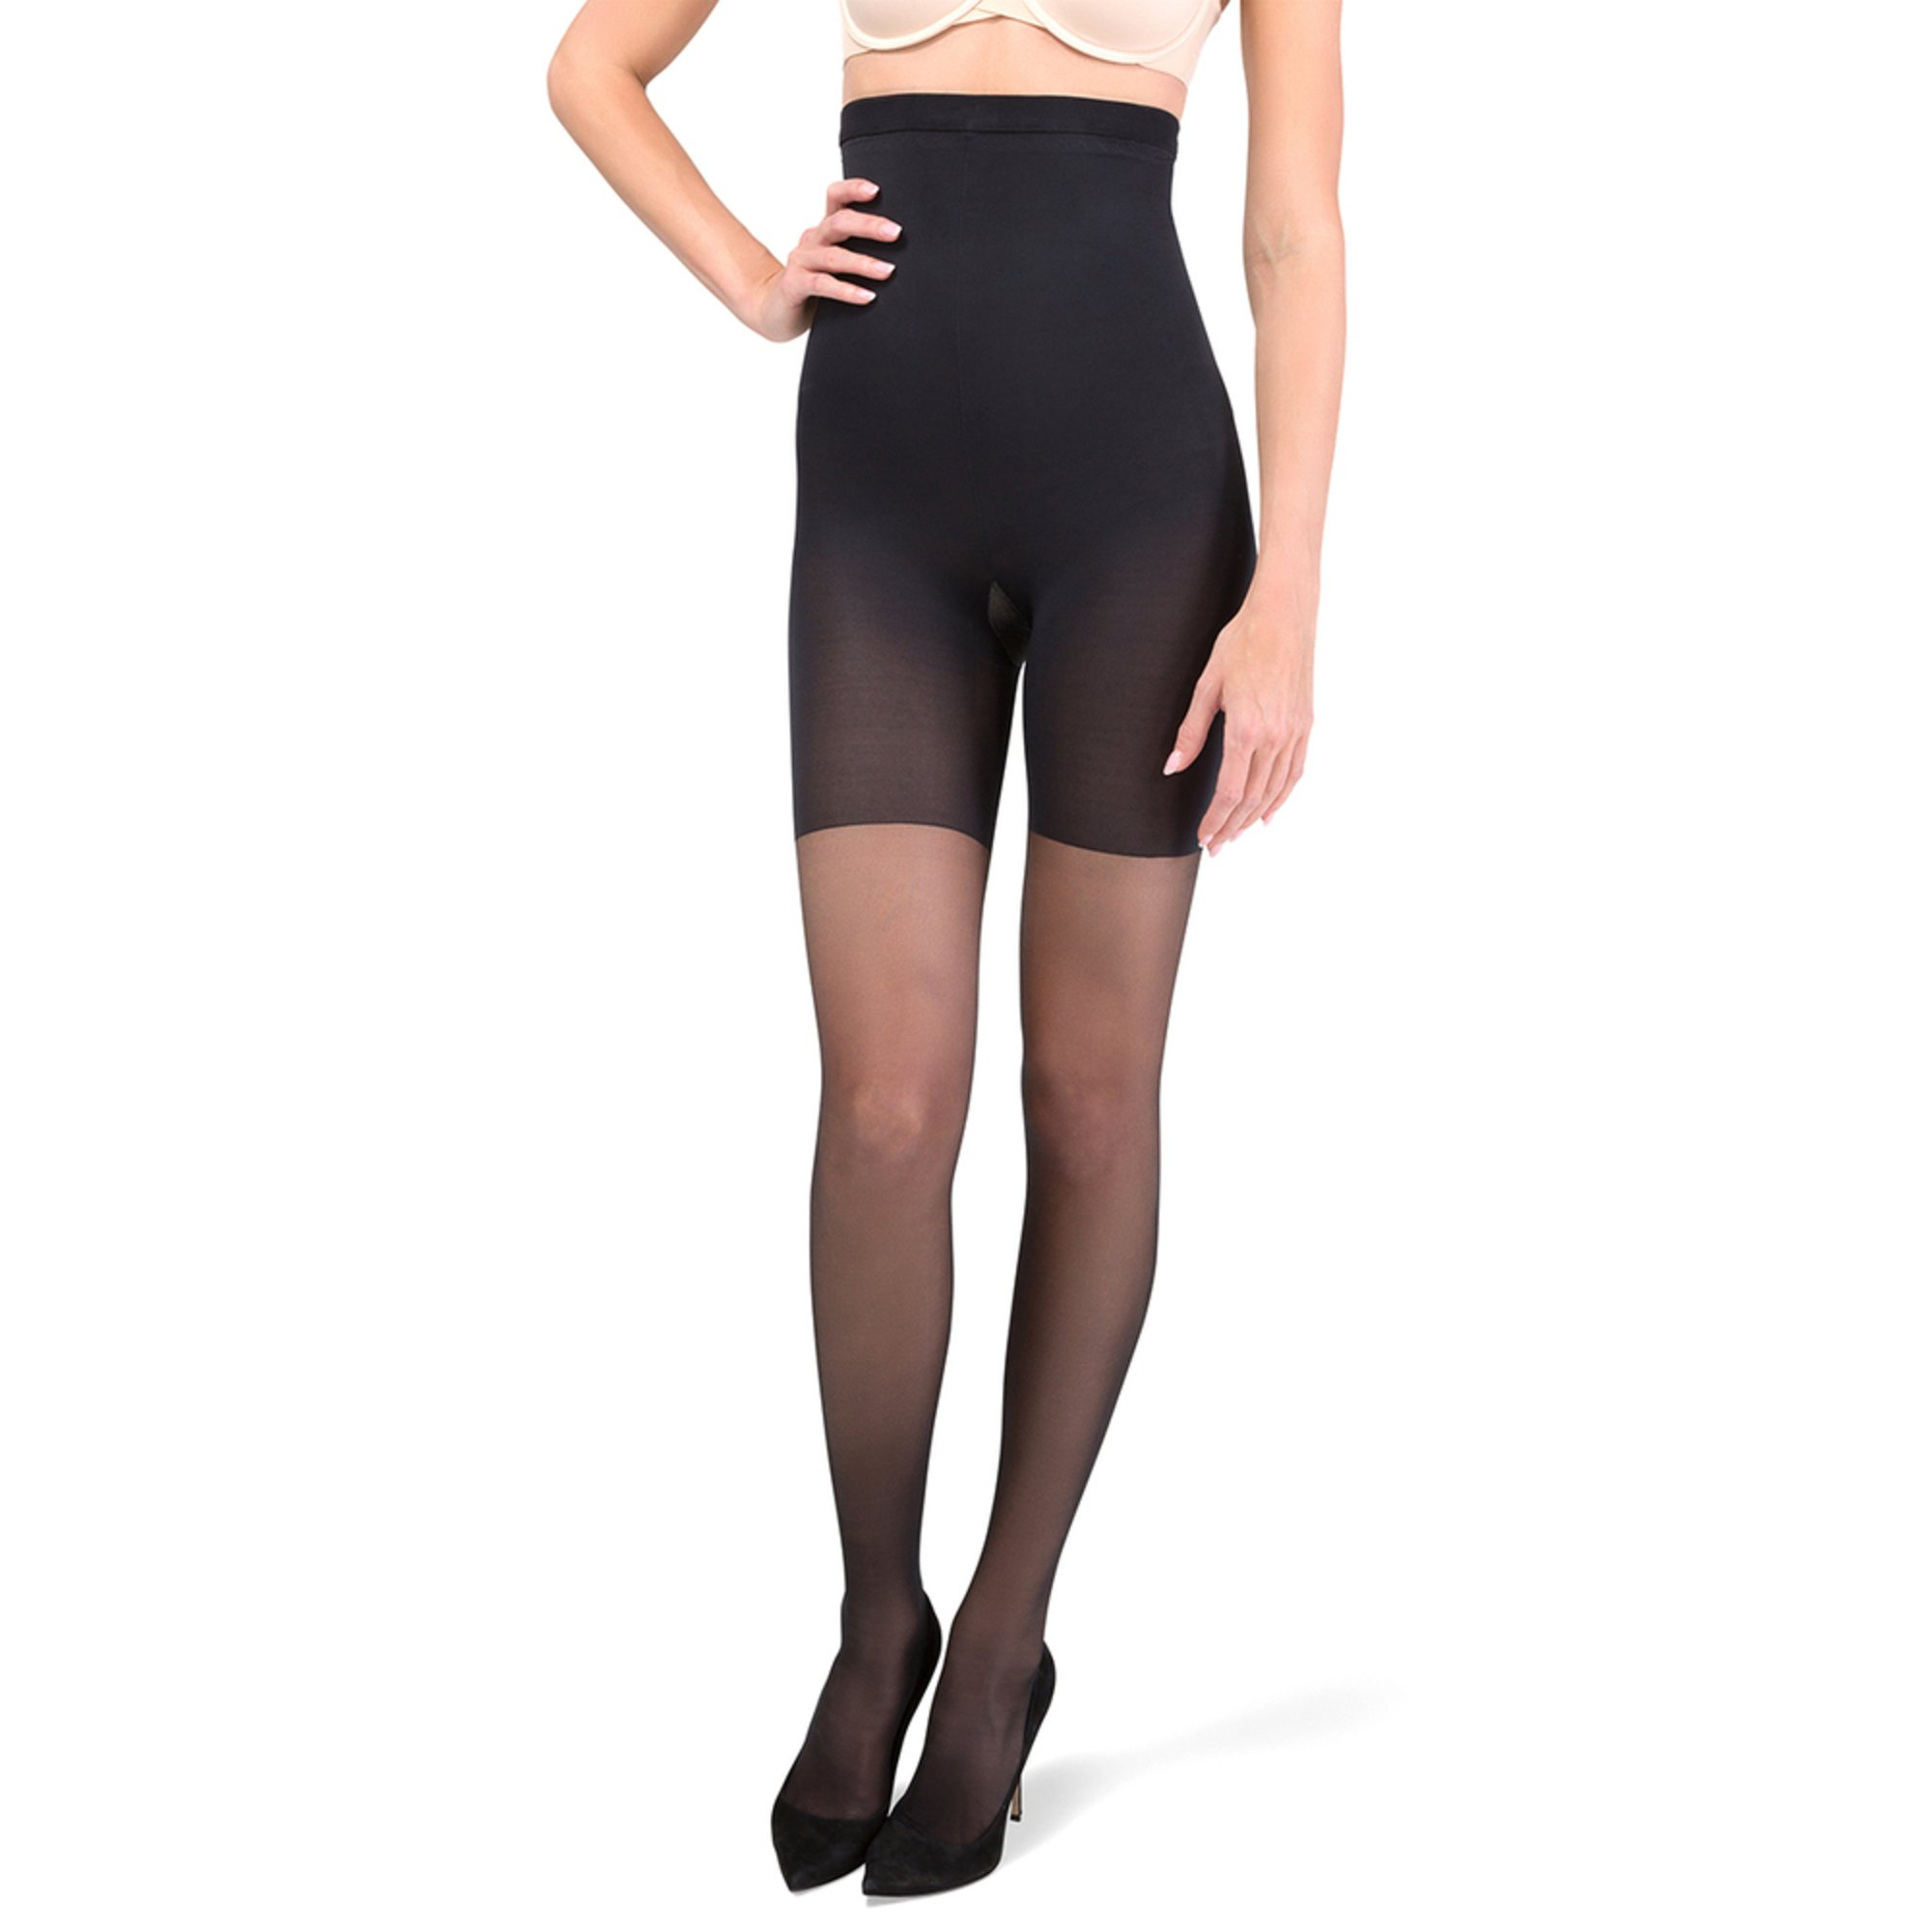 779ced265ca ASSETS Red Hot Label by Spanx. Red Hot by Spanx High Waist Shaping Pantyhose  Black